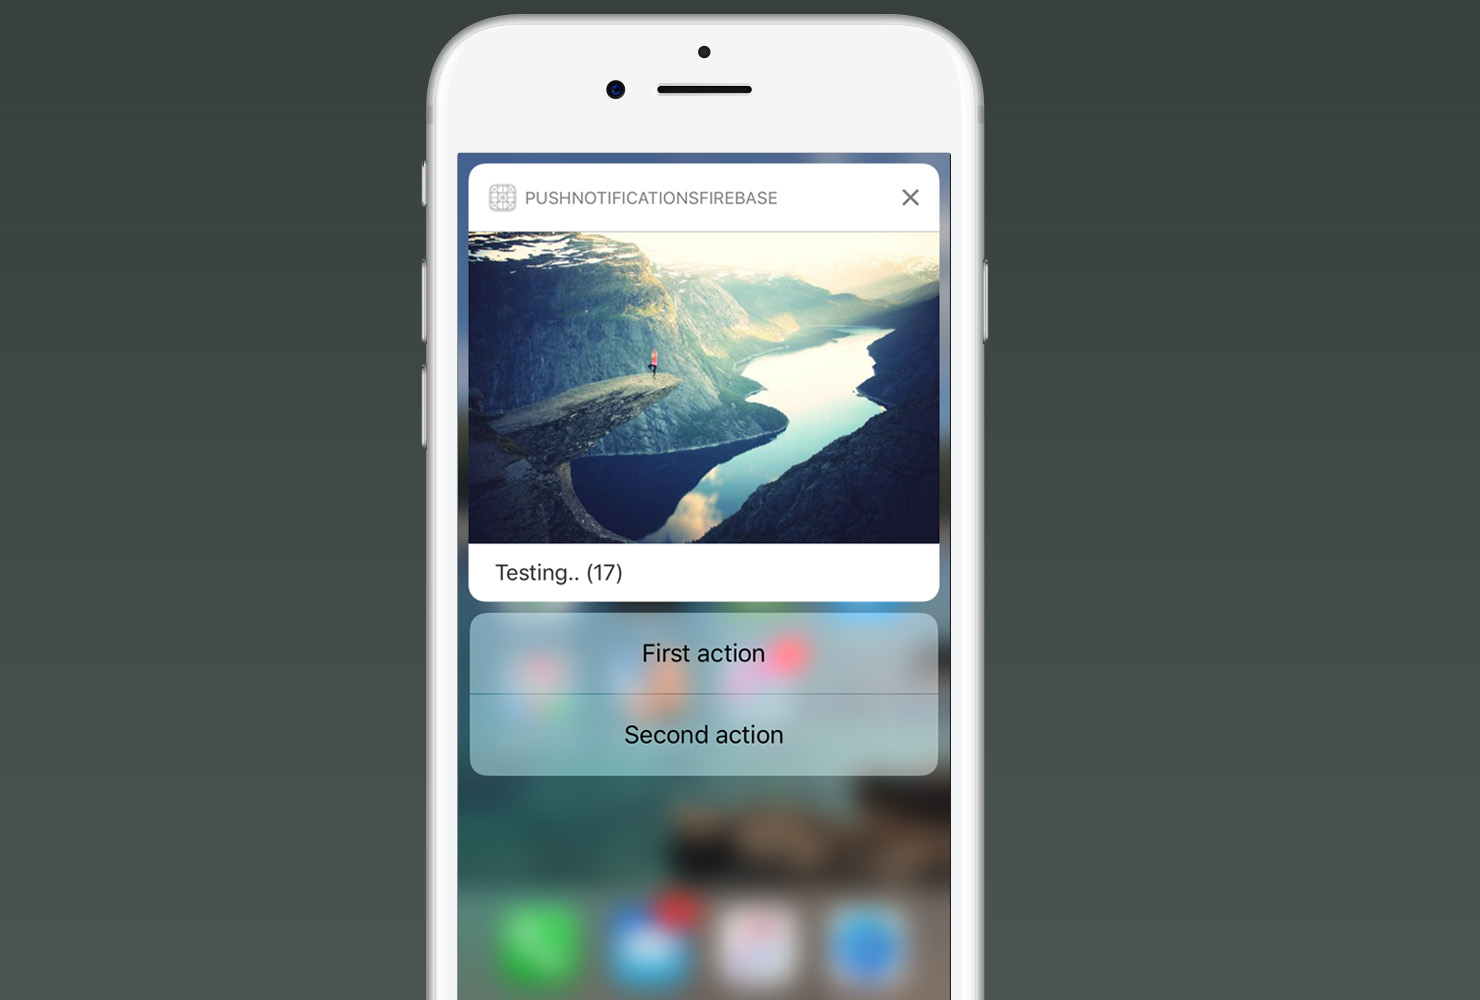 Actionable Push Notifications